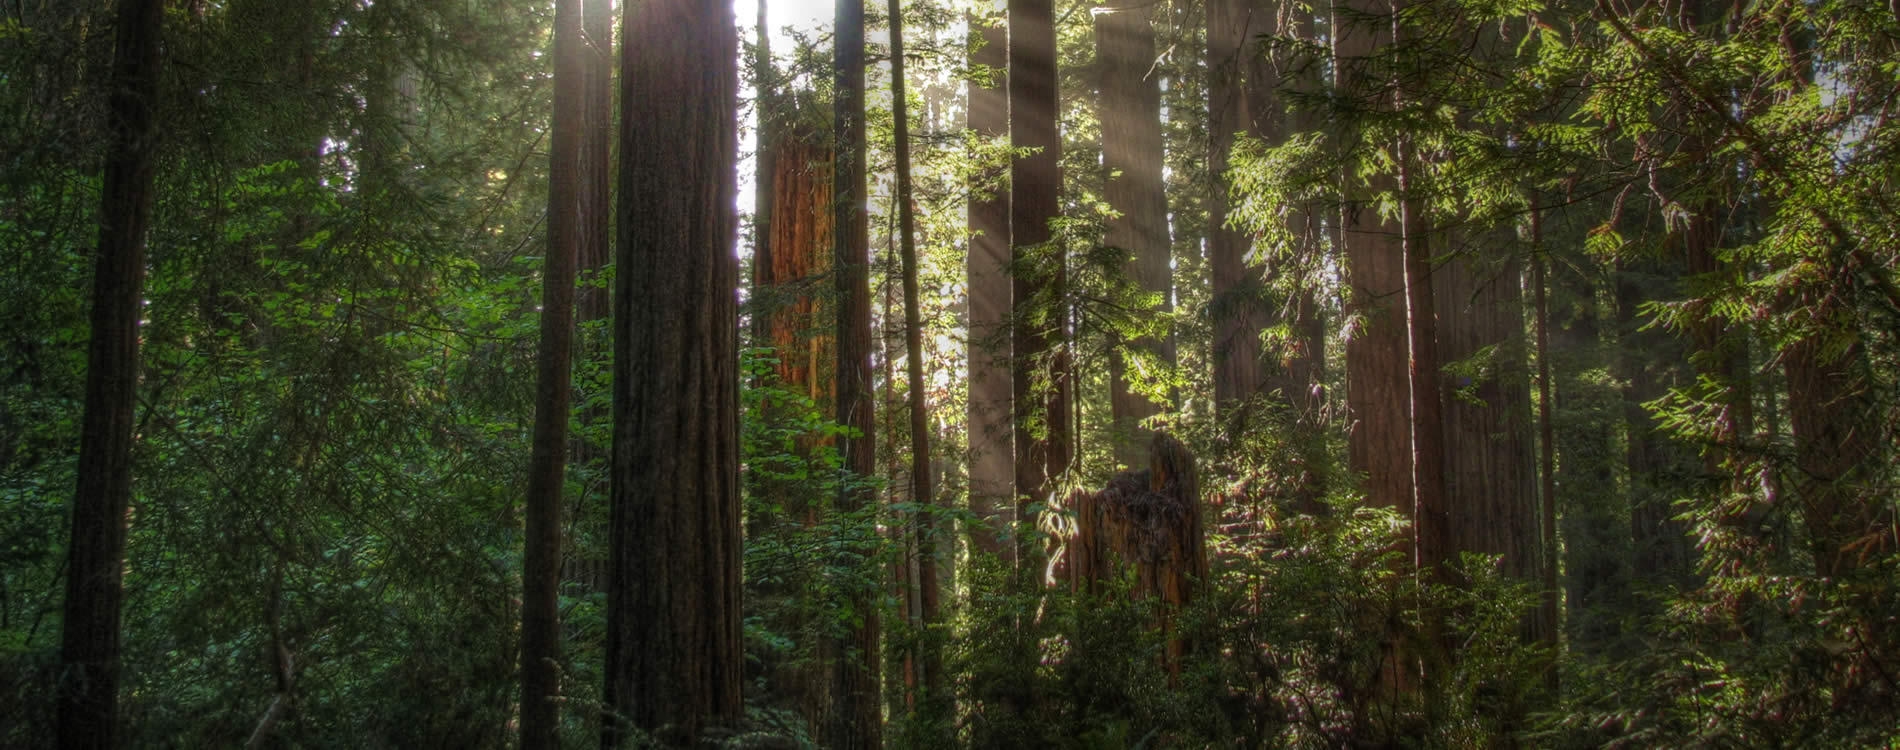 northern california giant redwoods forest